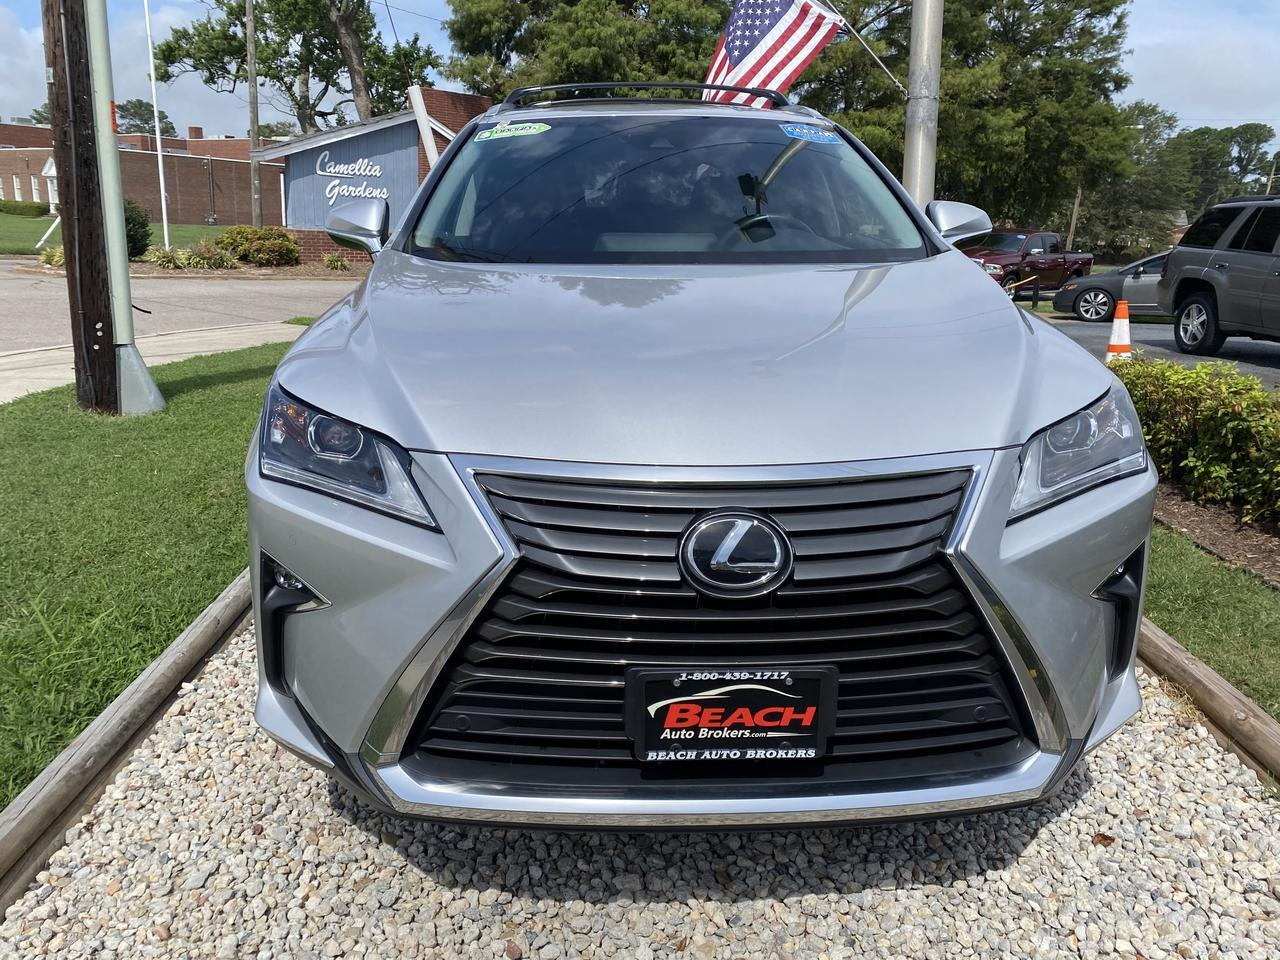 2016 LEXUS RX350 WARRANTY, LEATHER, HEATED/COOLED SEATS, NAV, BLUETOOTH, SUNROOF, LOW MILES, CLEAN CARFAX! Norfolk VA